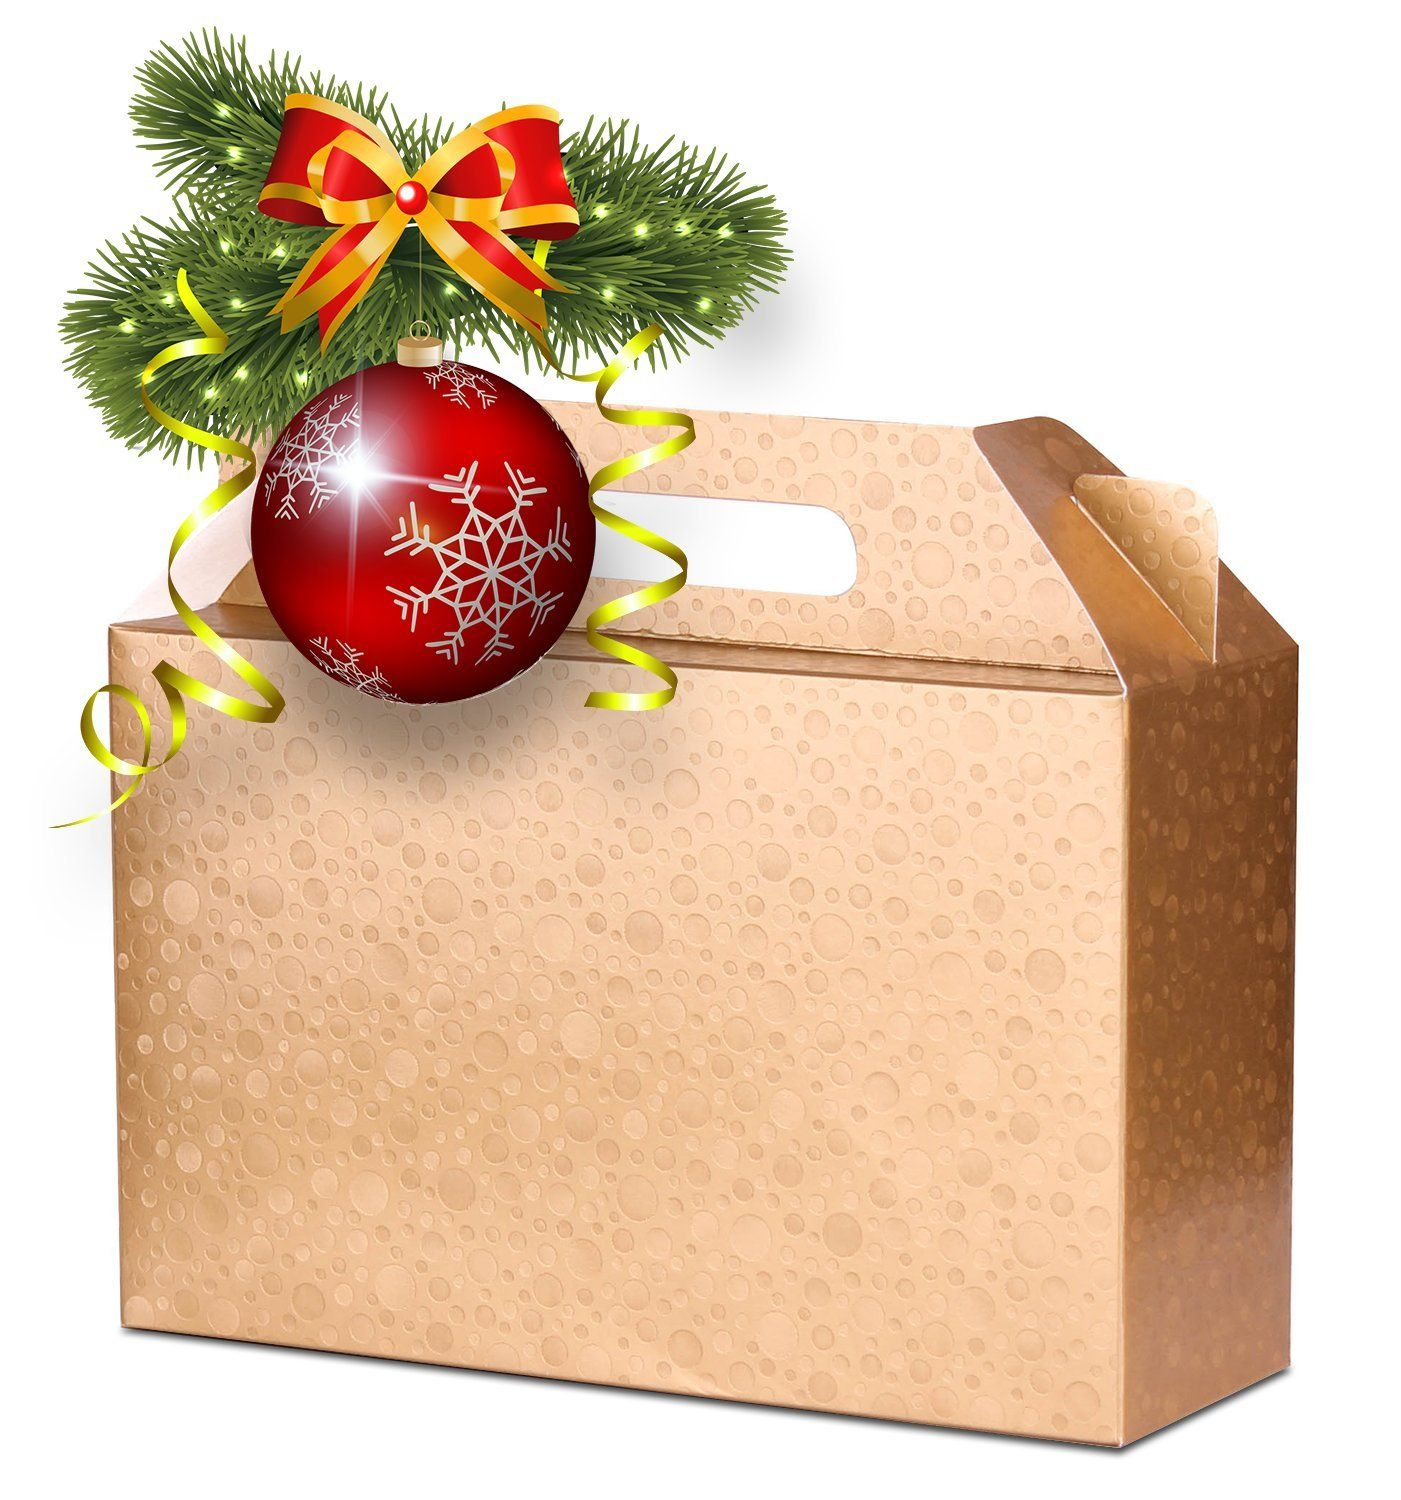 Best decorative gift boxes set of 6 with lids and handle